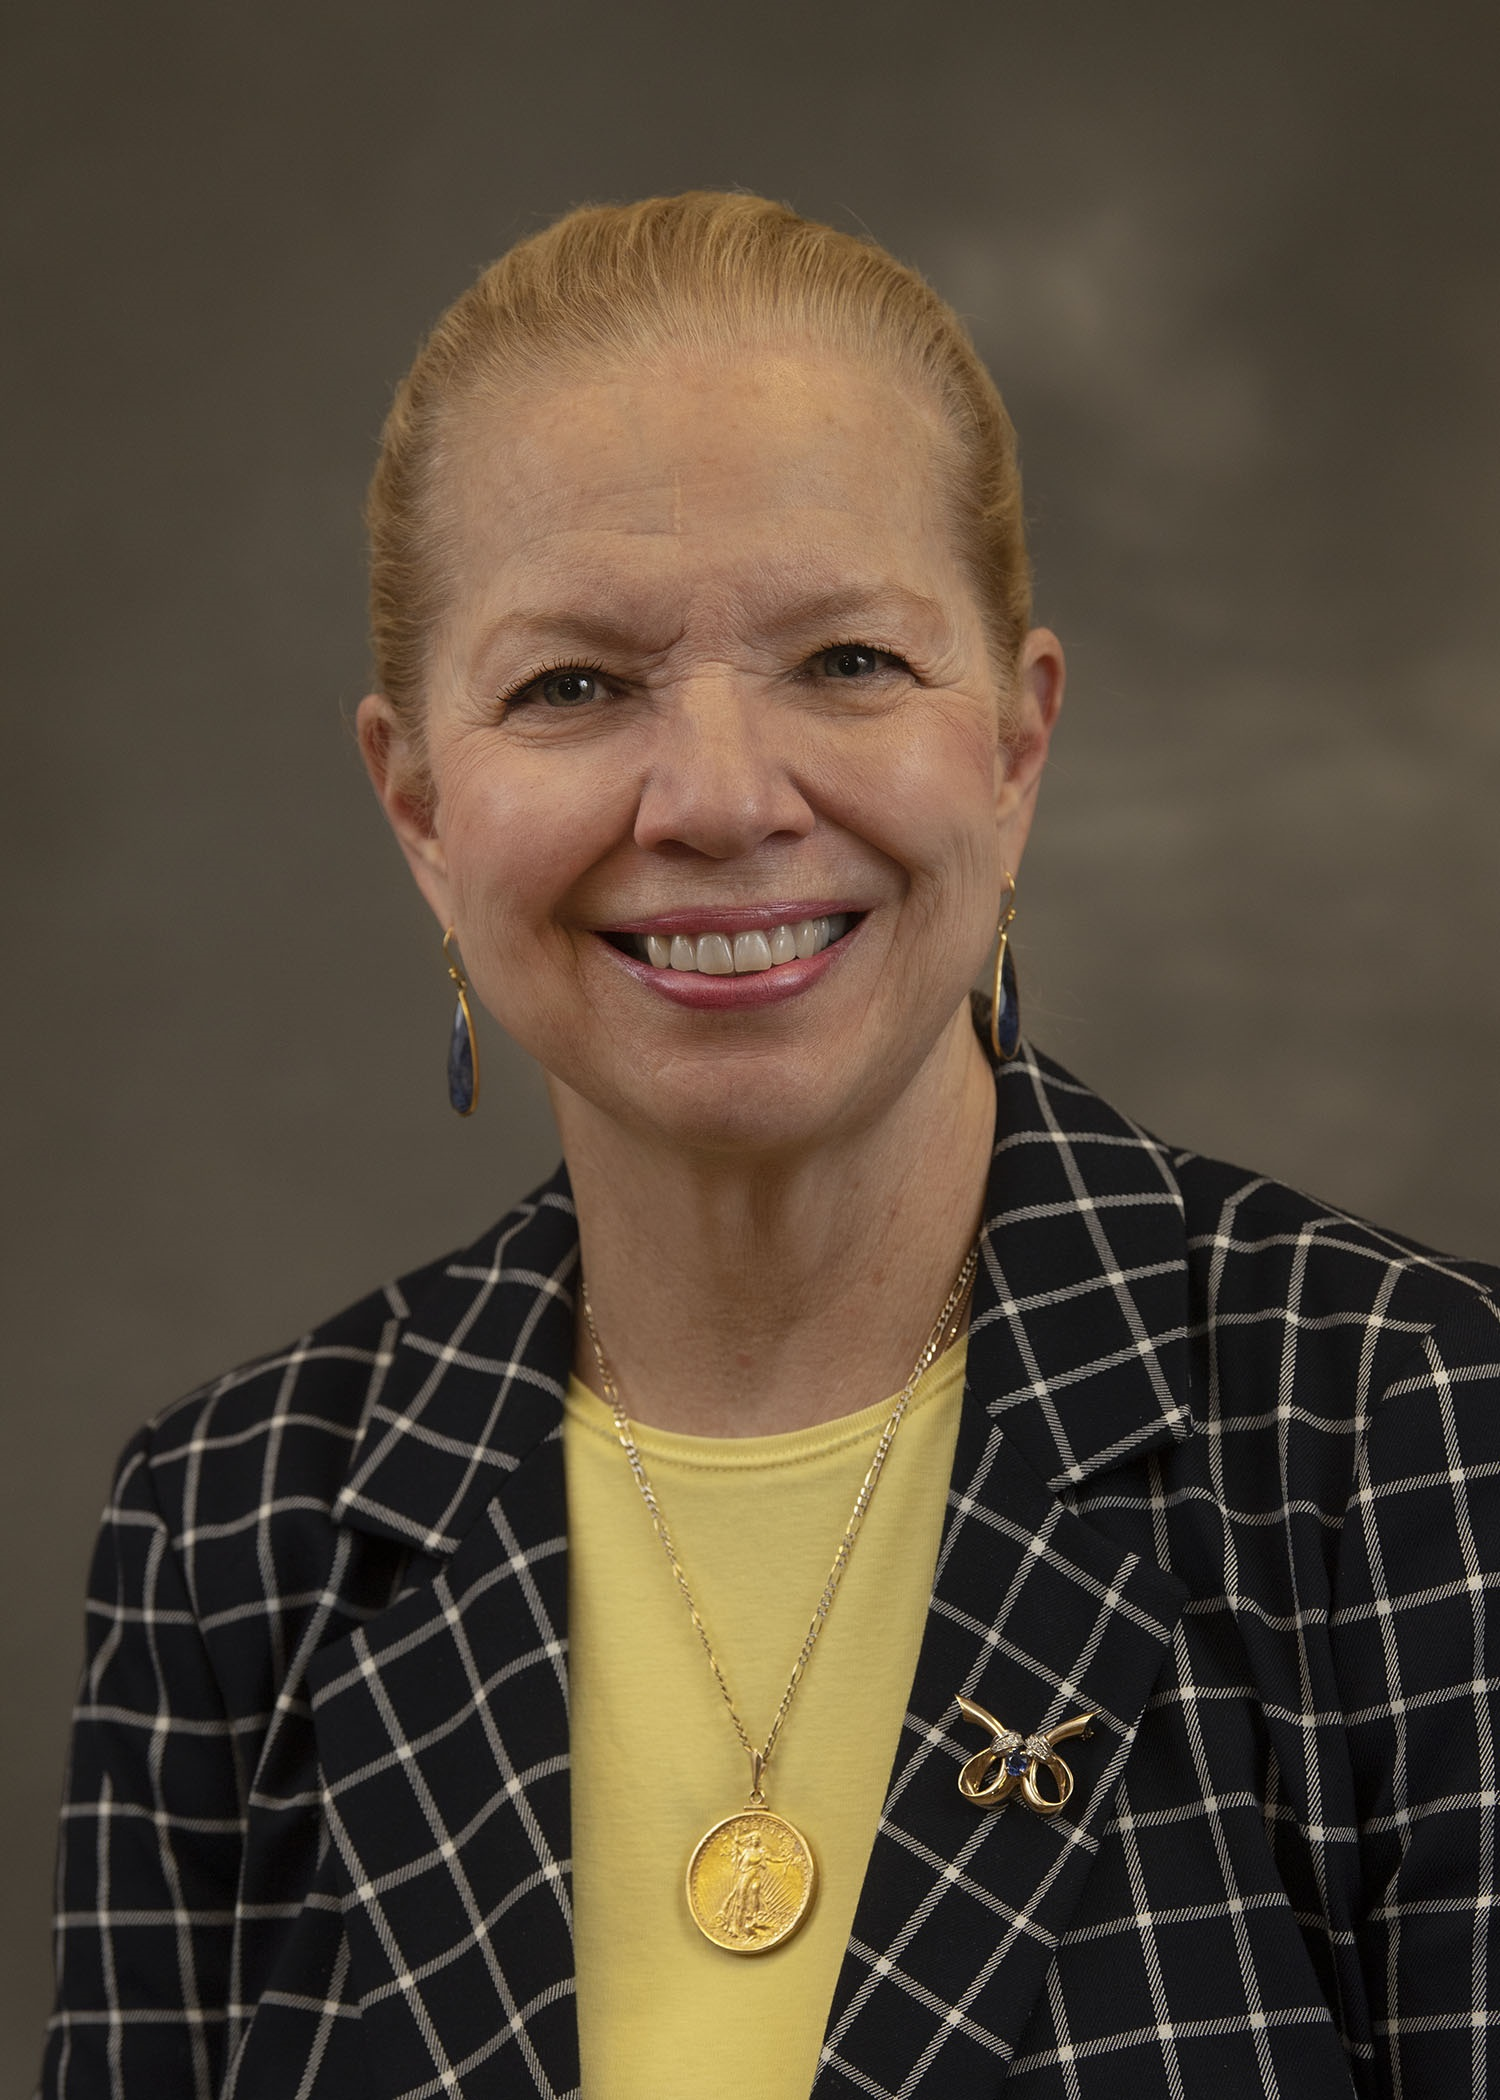 Ohio Gov. Mike DeWine has appointed Ann Womer Benjamin, J.D., of Aurora, Ohio, to the Kent State University Board of Trustees.